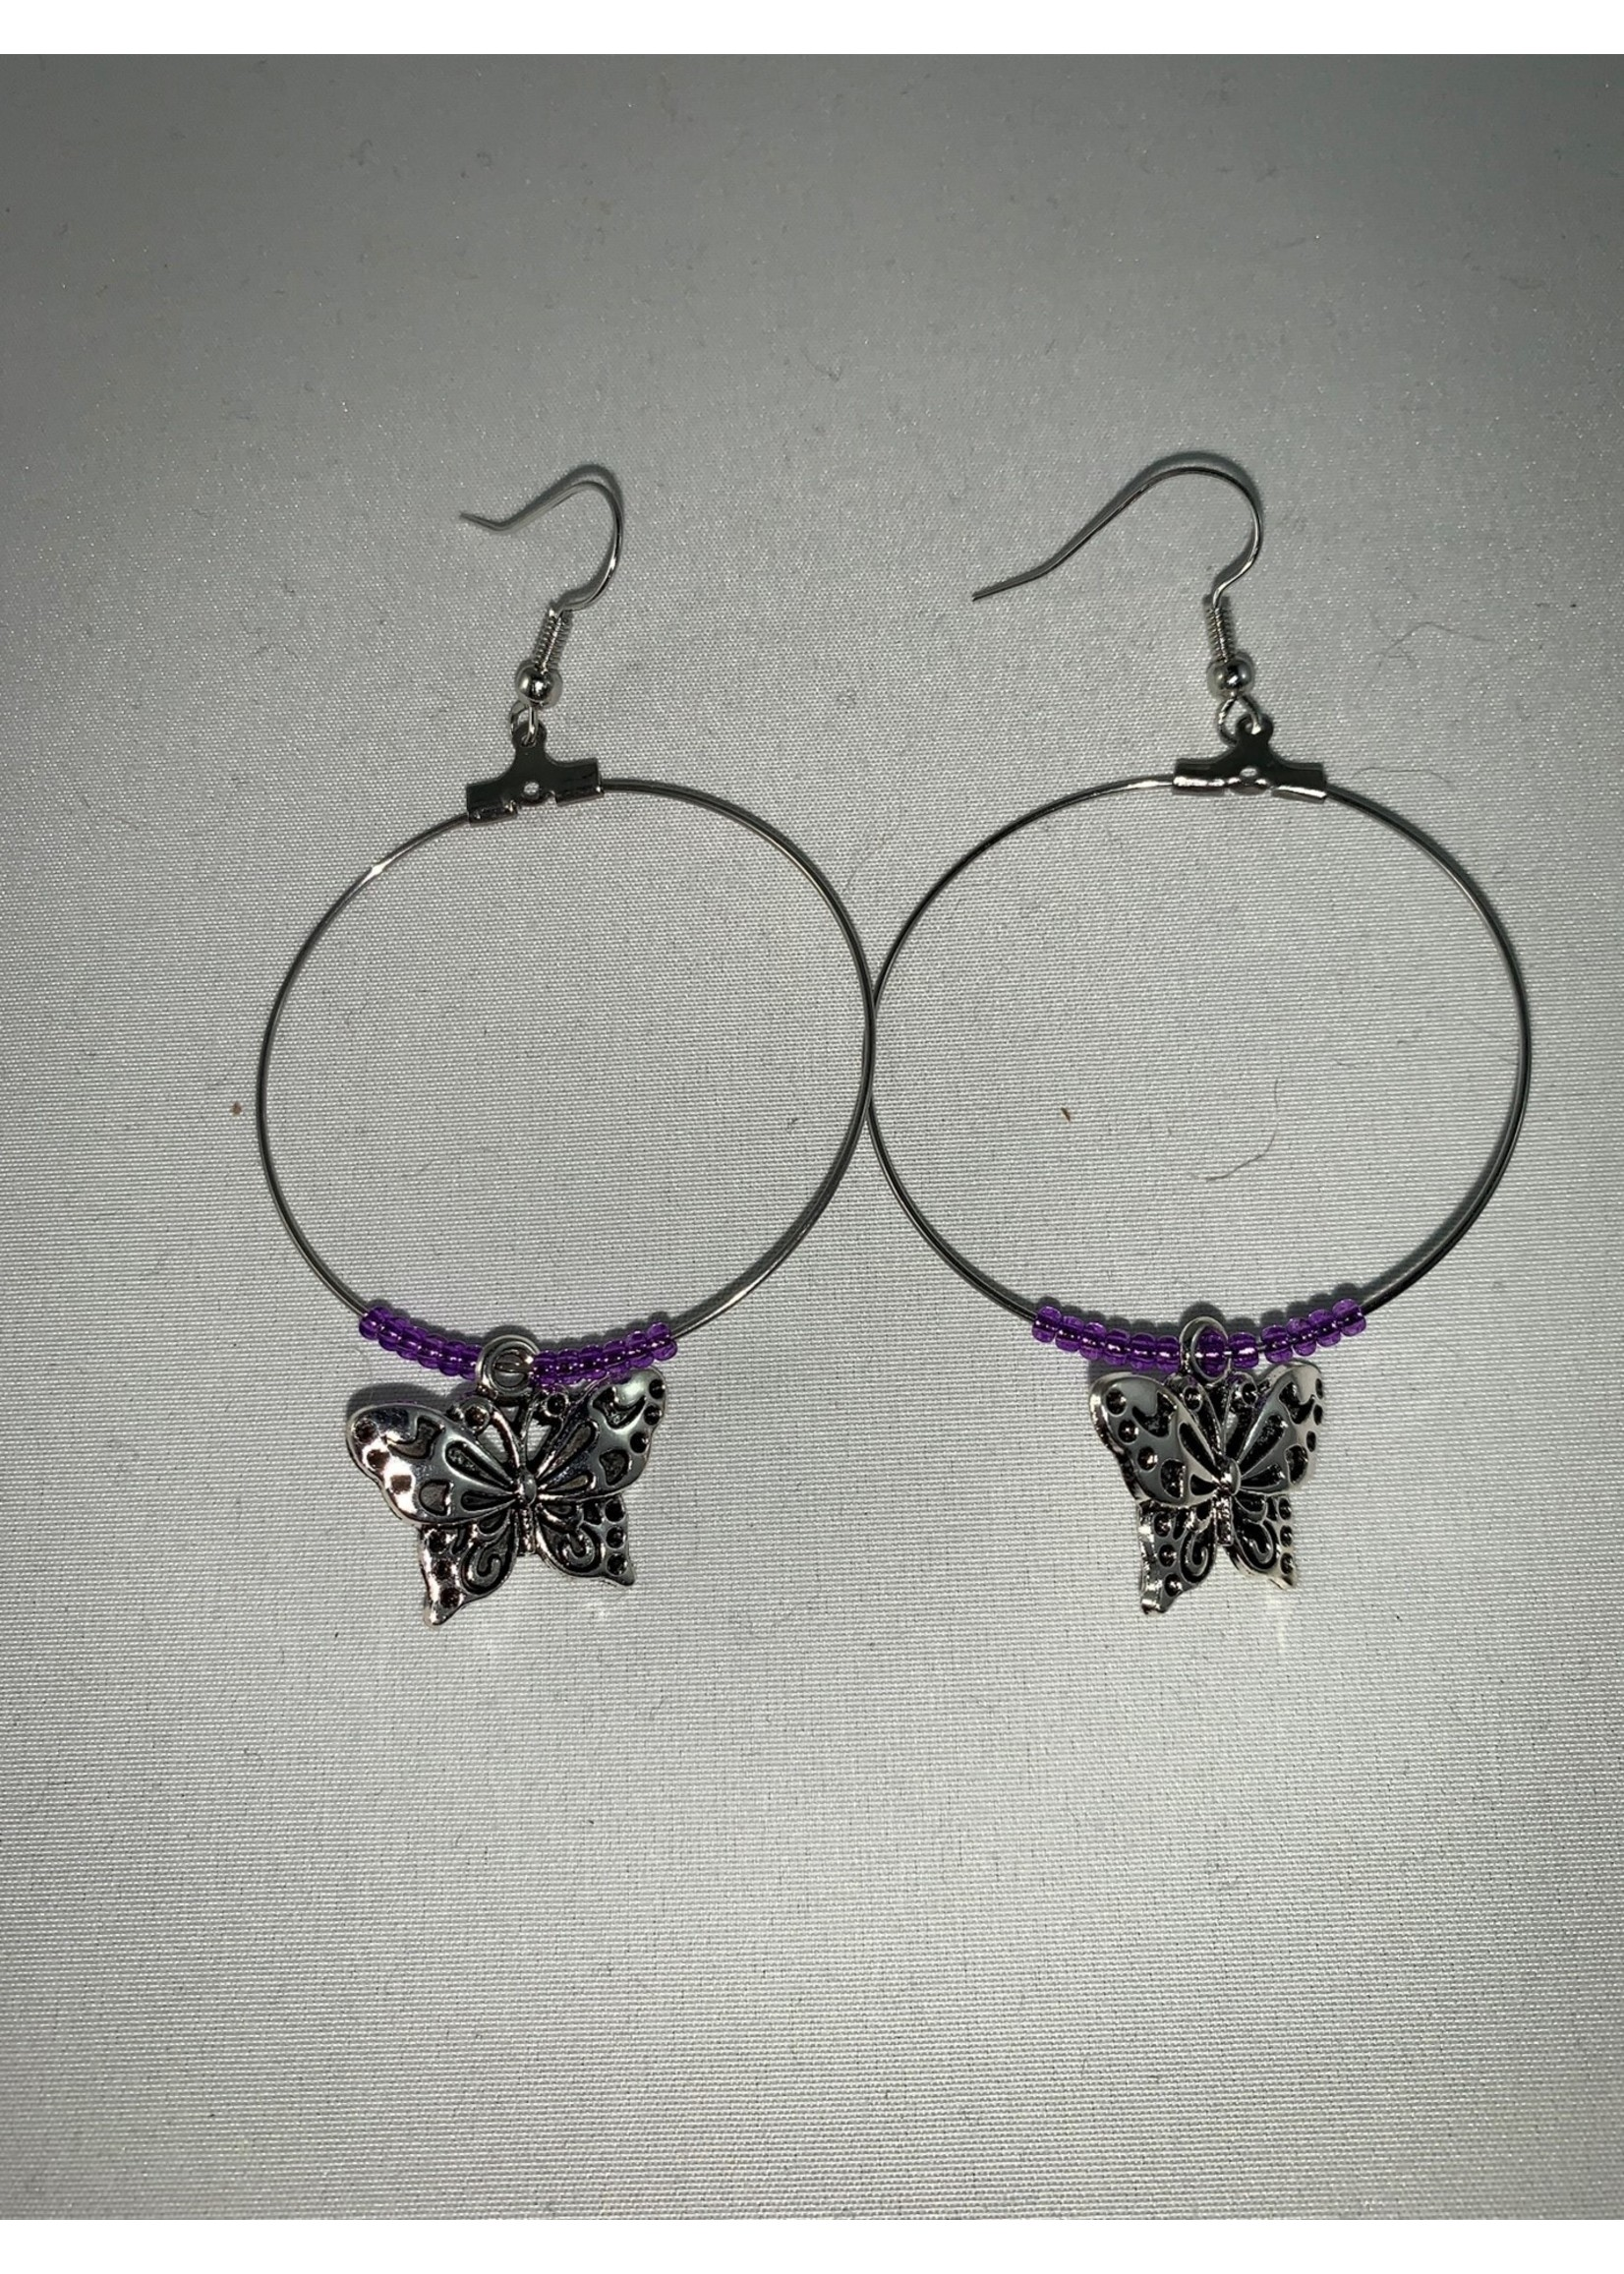 Large Hoop Earrings with Silver Butterfly and Silver Lined Purple Beads